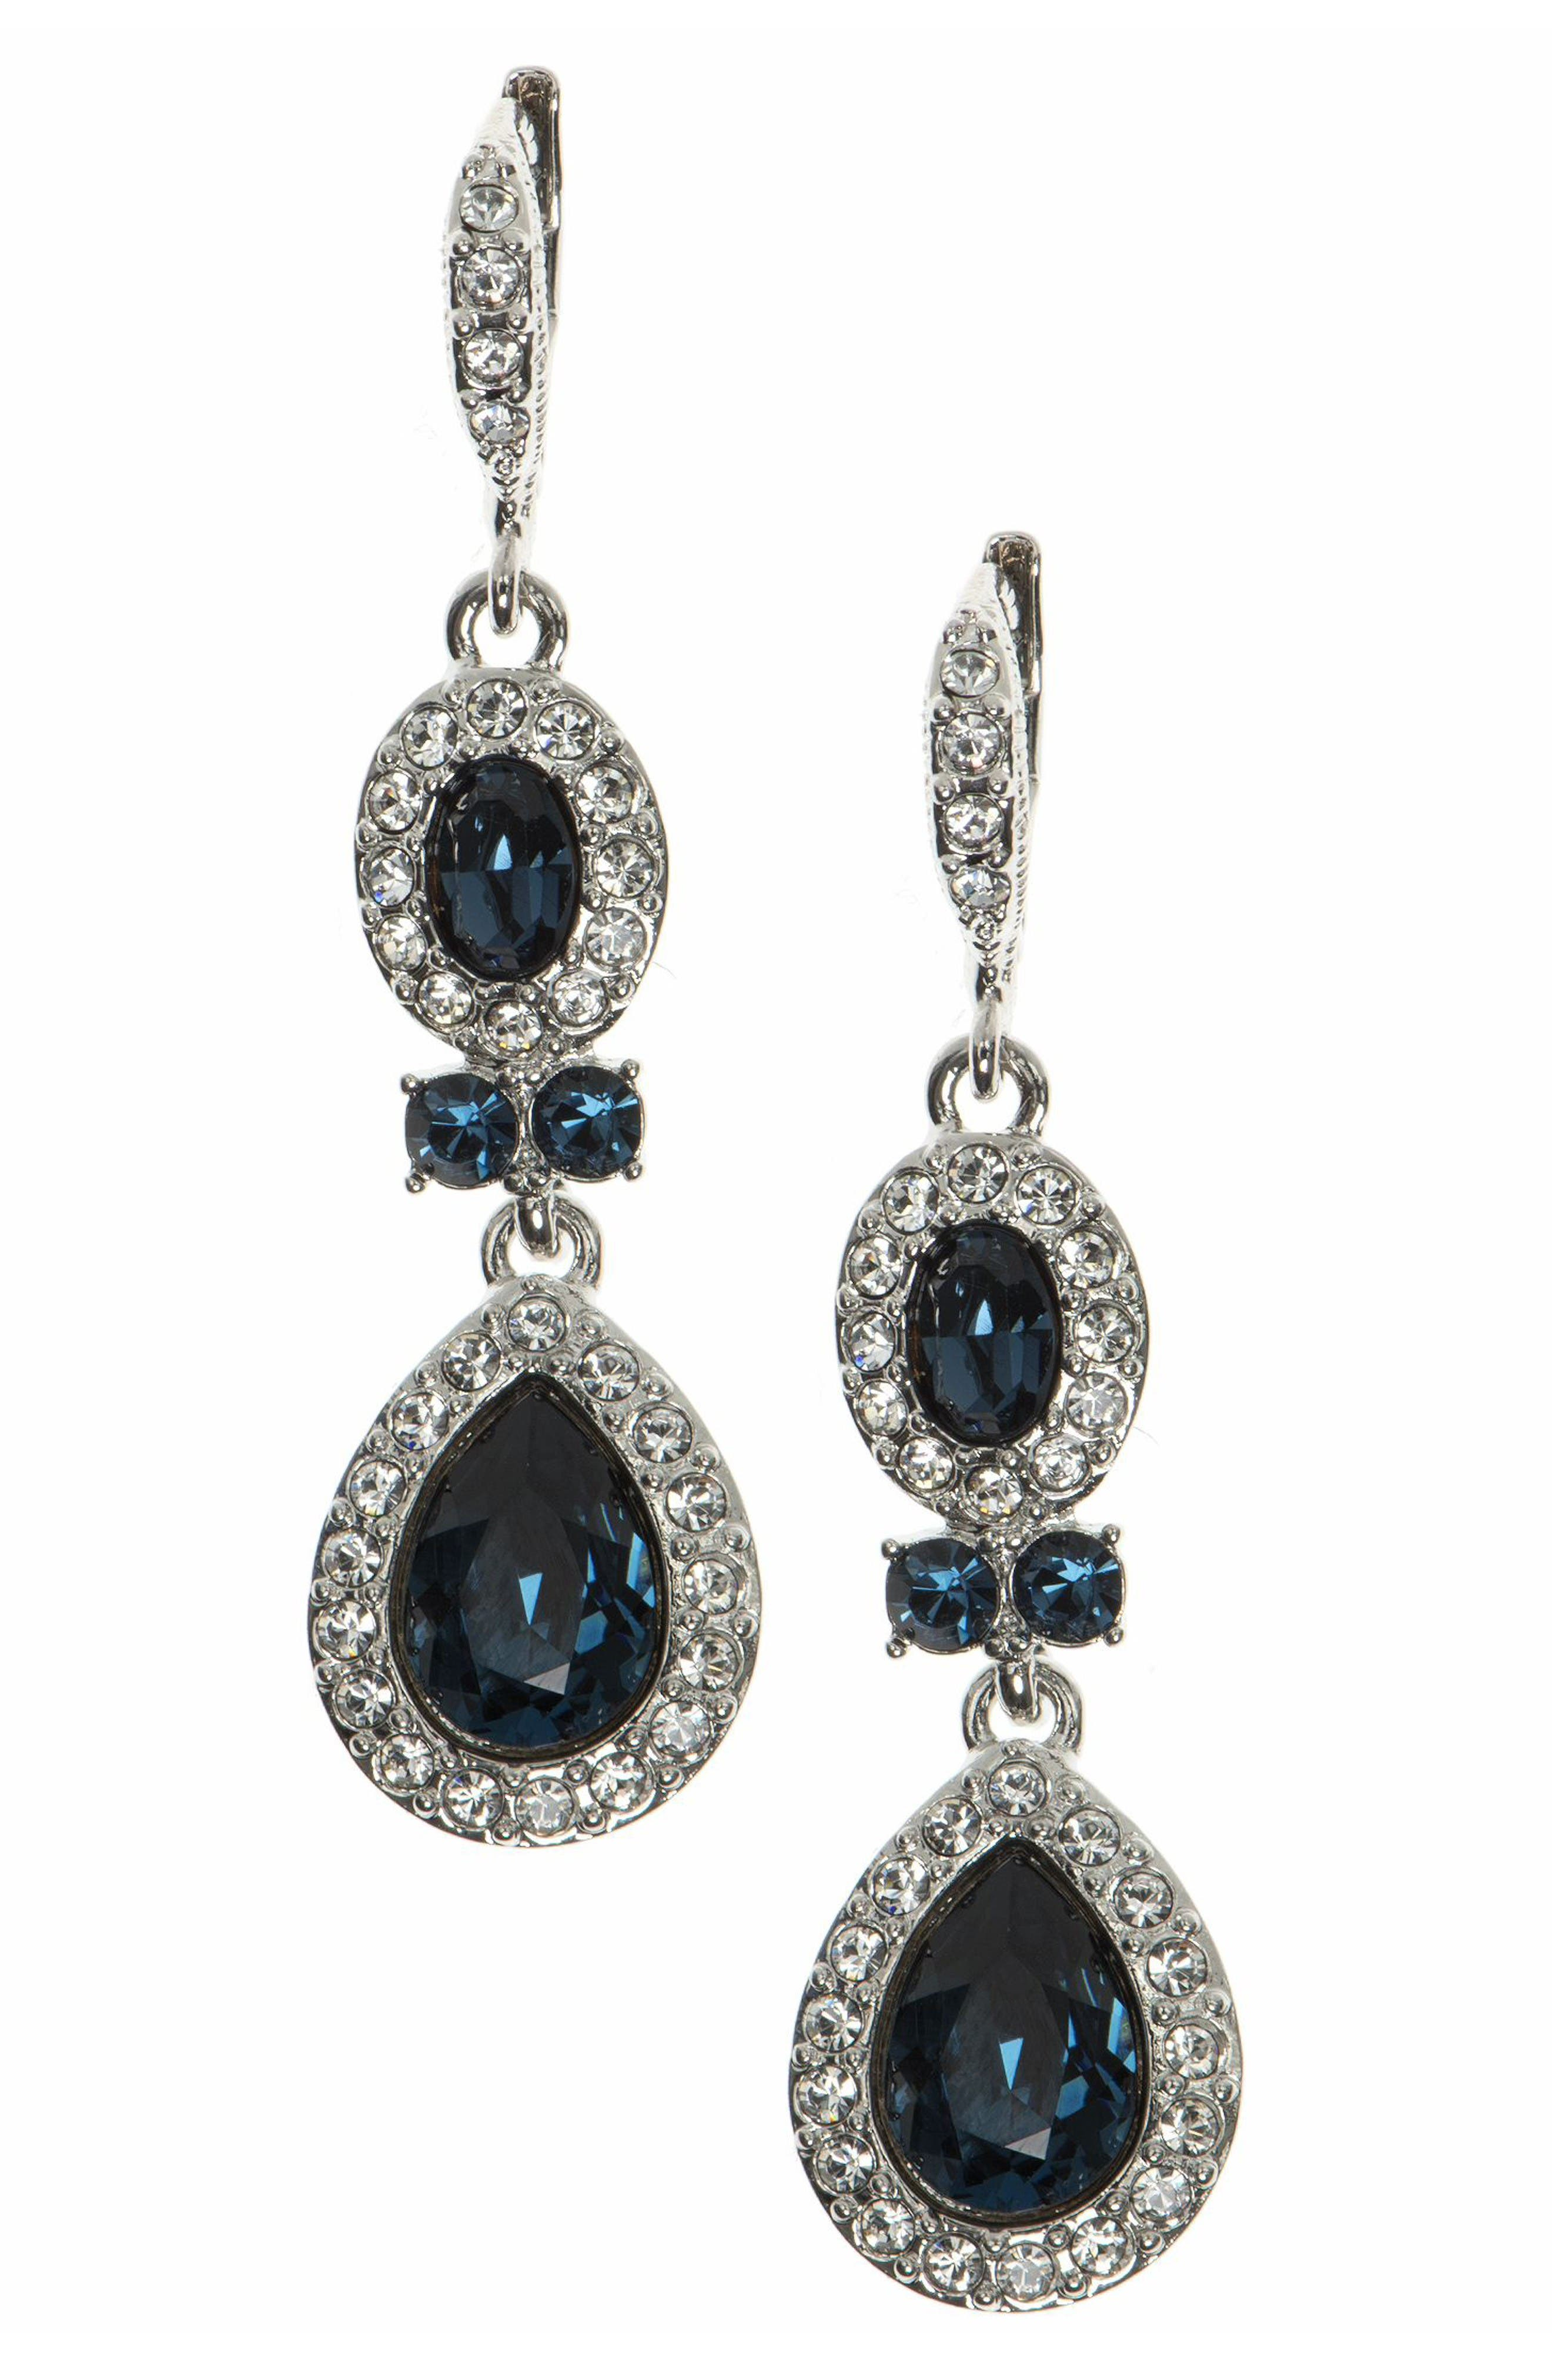 Main Image - Givenchy Pear Double Drop Earrings